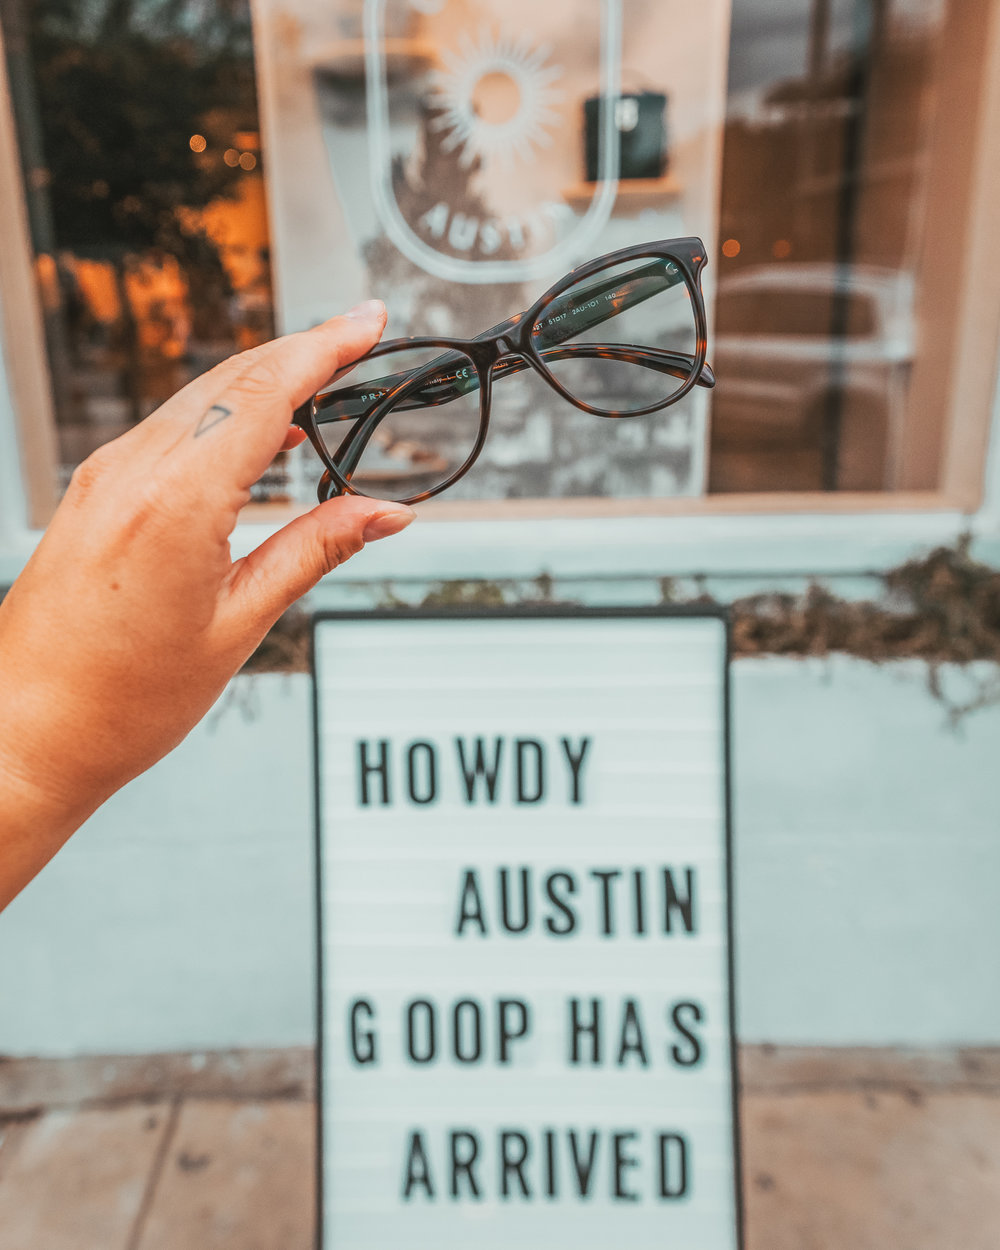 SXSW 2019 Recap: LensCrafters Event at the Austin Goop Pop-Up